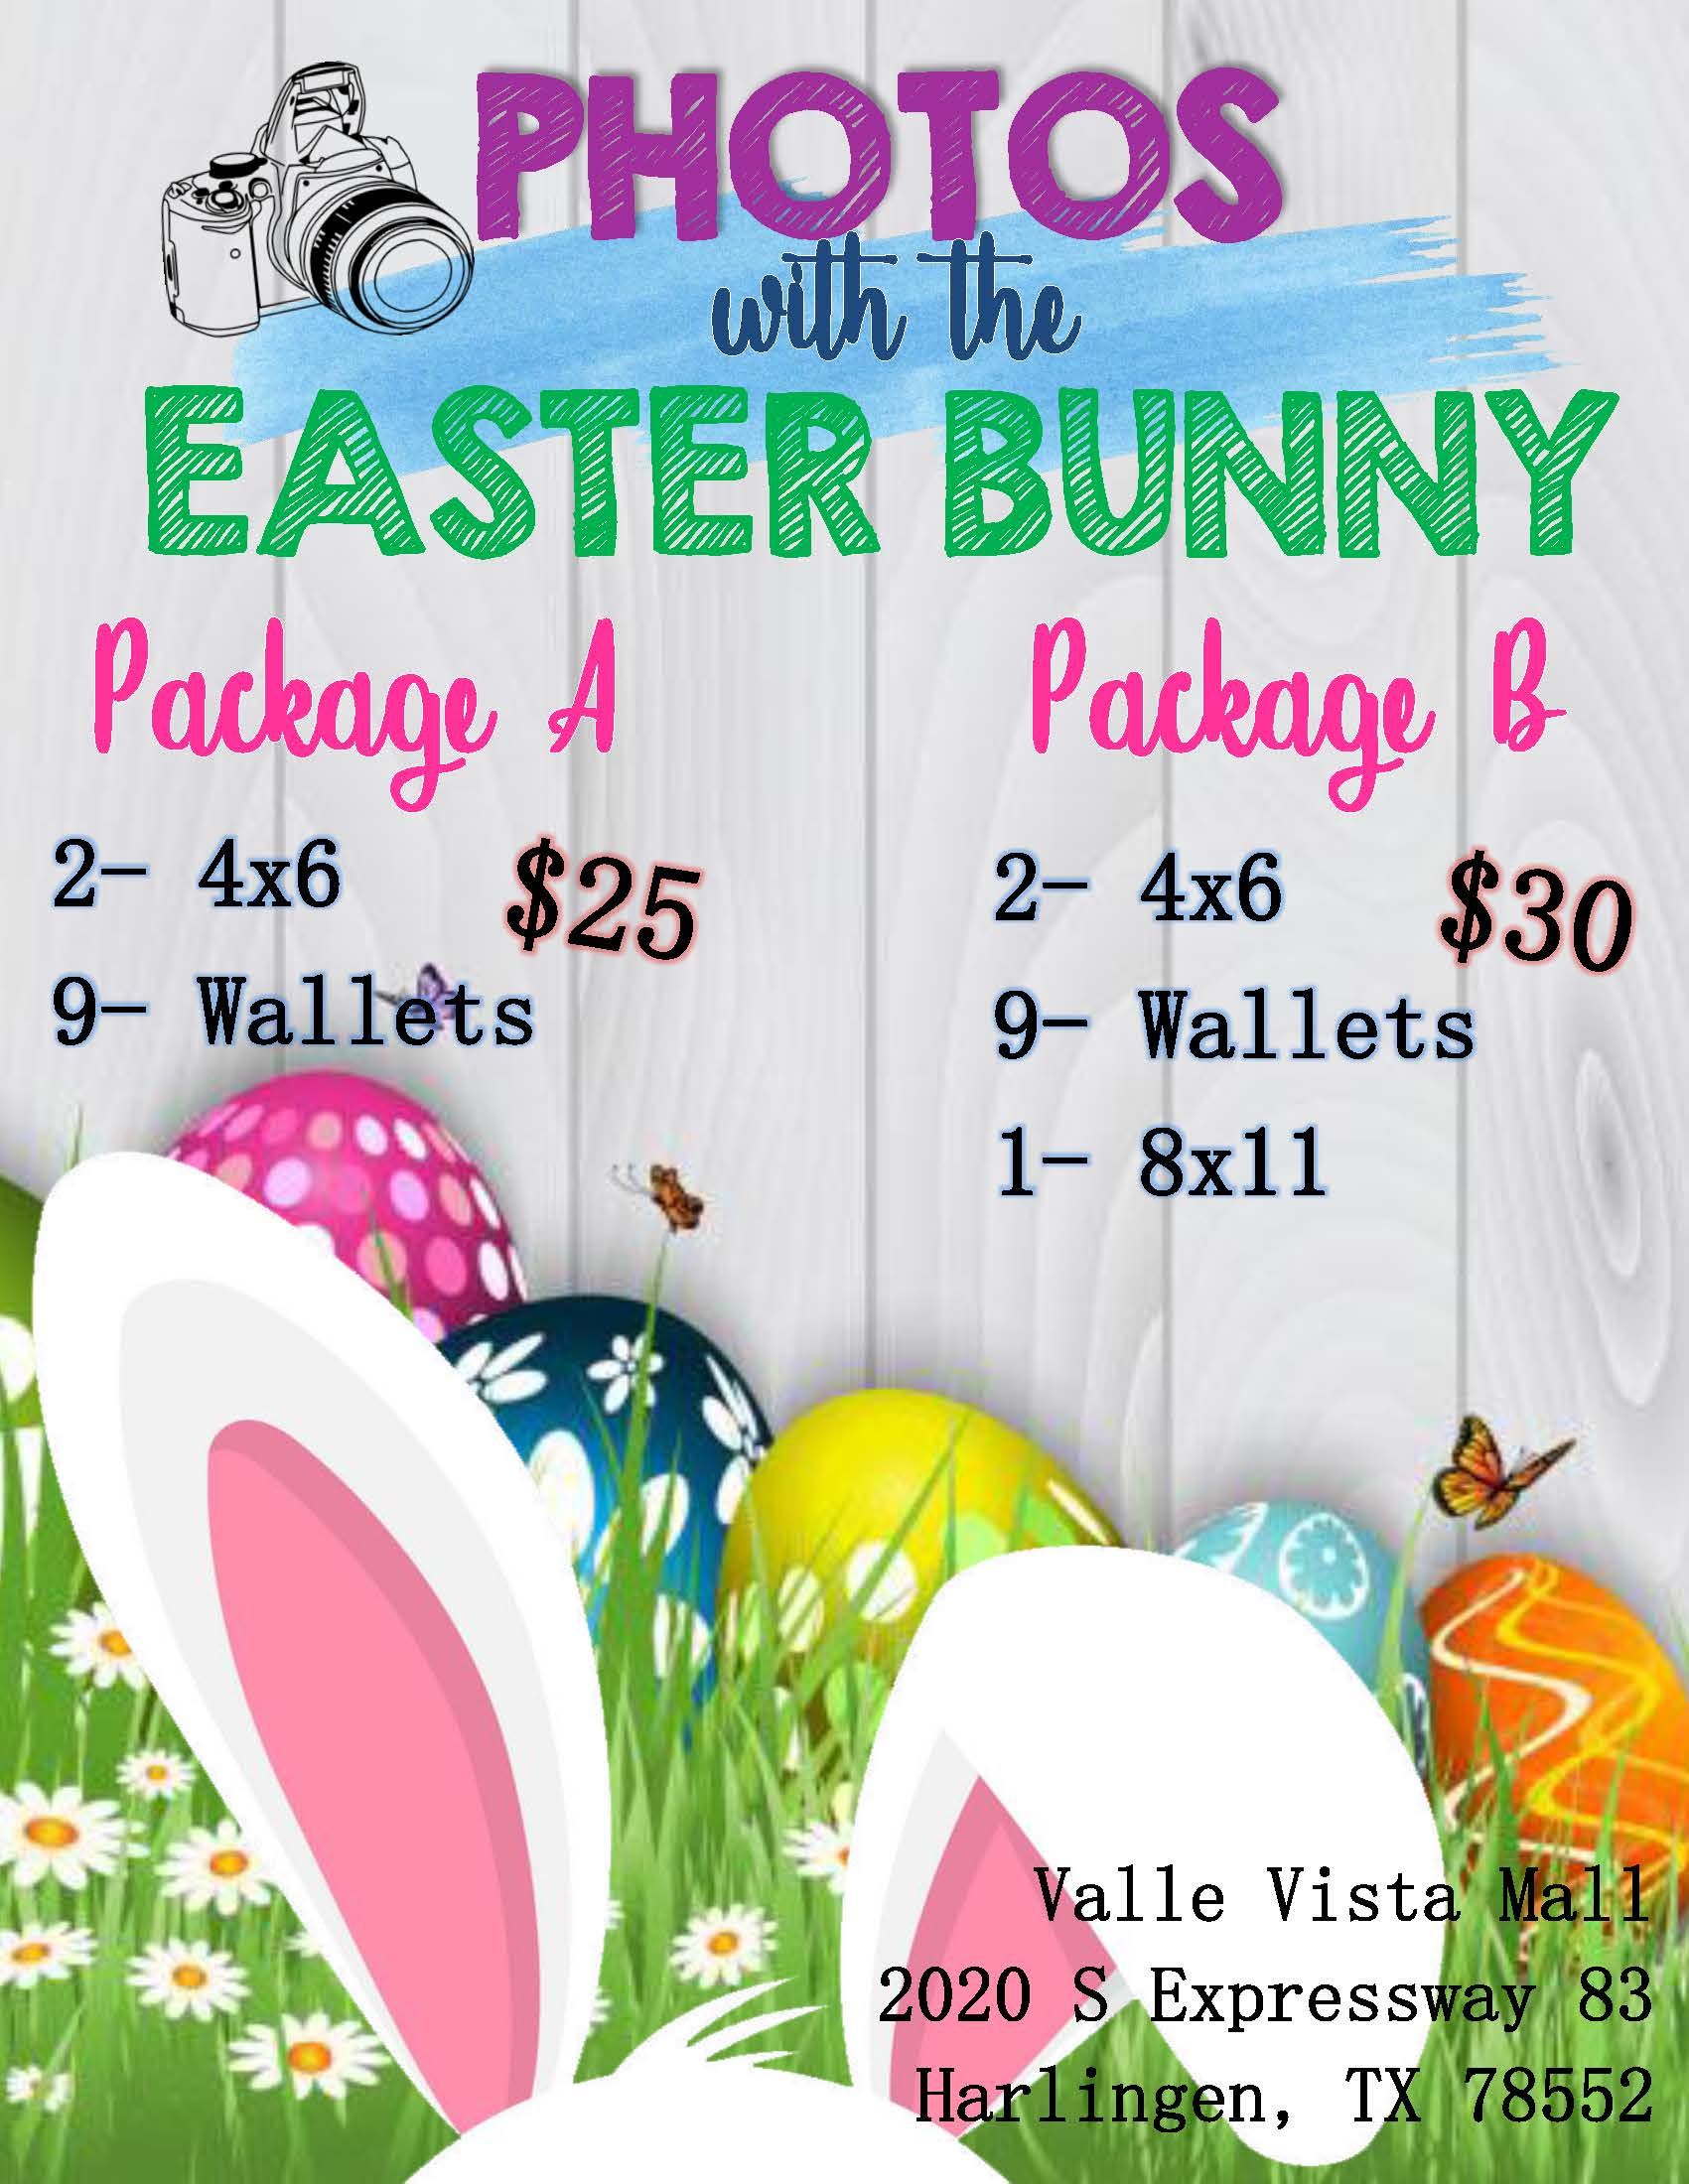 Easter Bunny Photo Packages